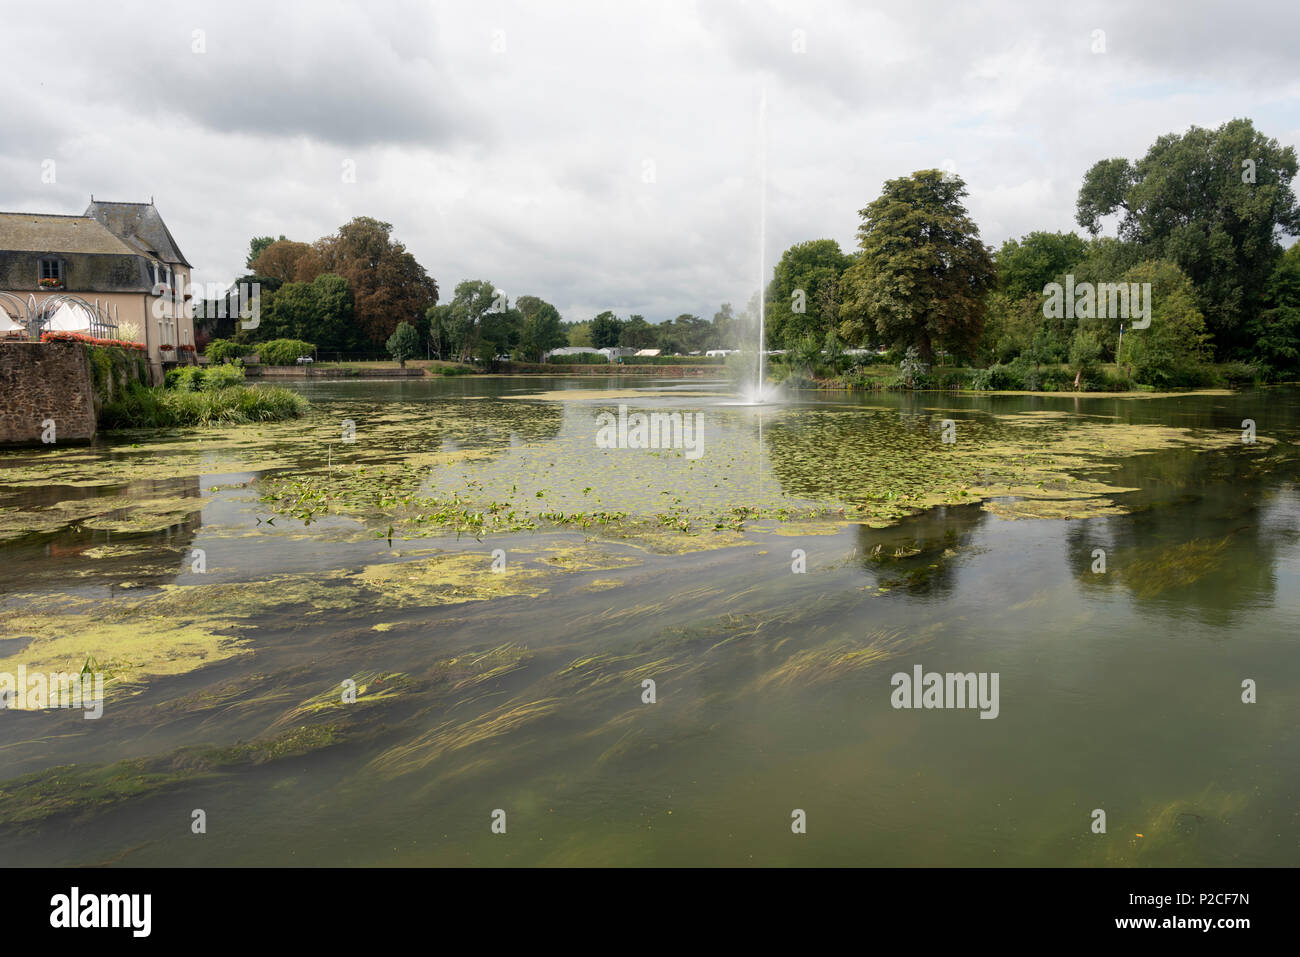 The large ornamental water fountain at La Flèche in the Sarthe department of Western France Stock Photo